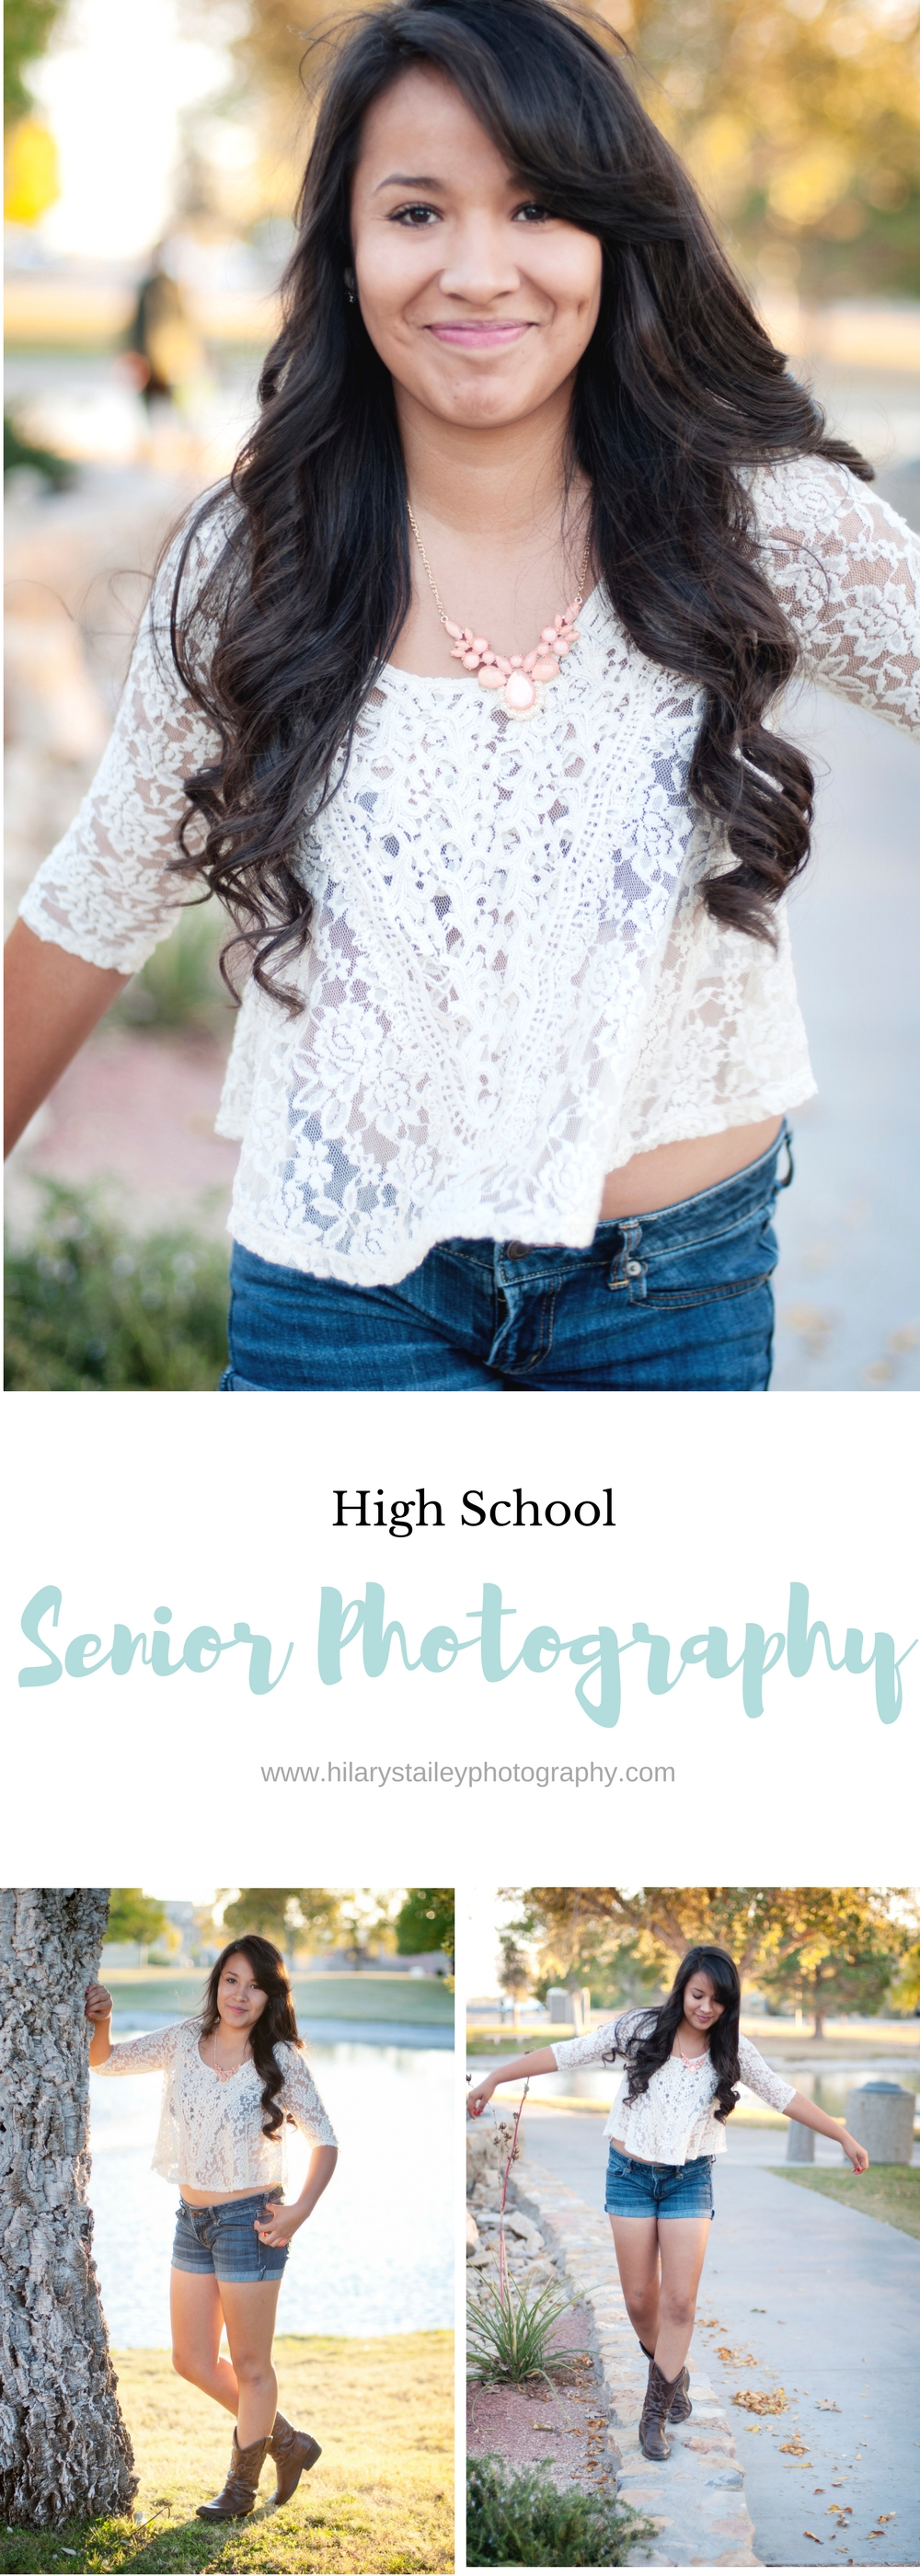 High School Senior Girl Photography @hilarystaileyphotography.com